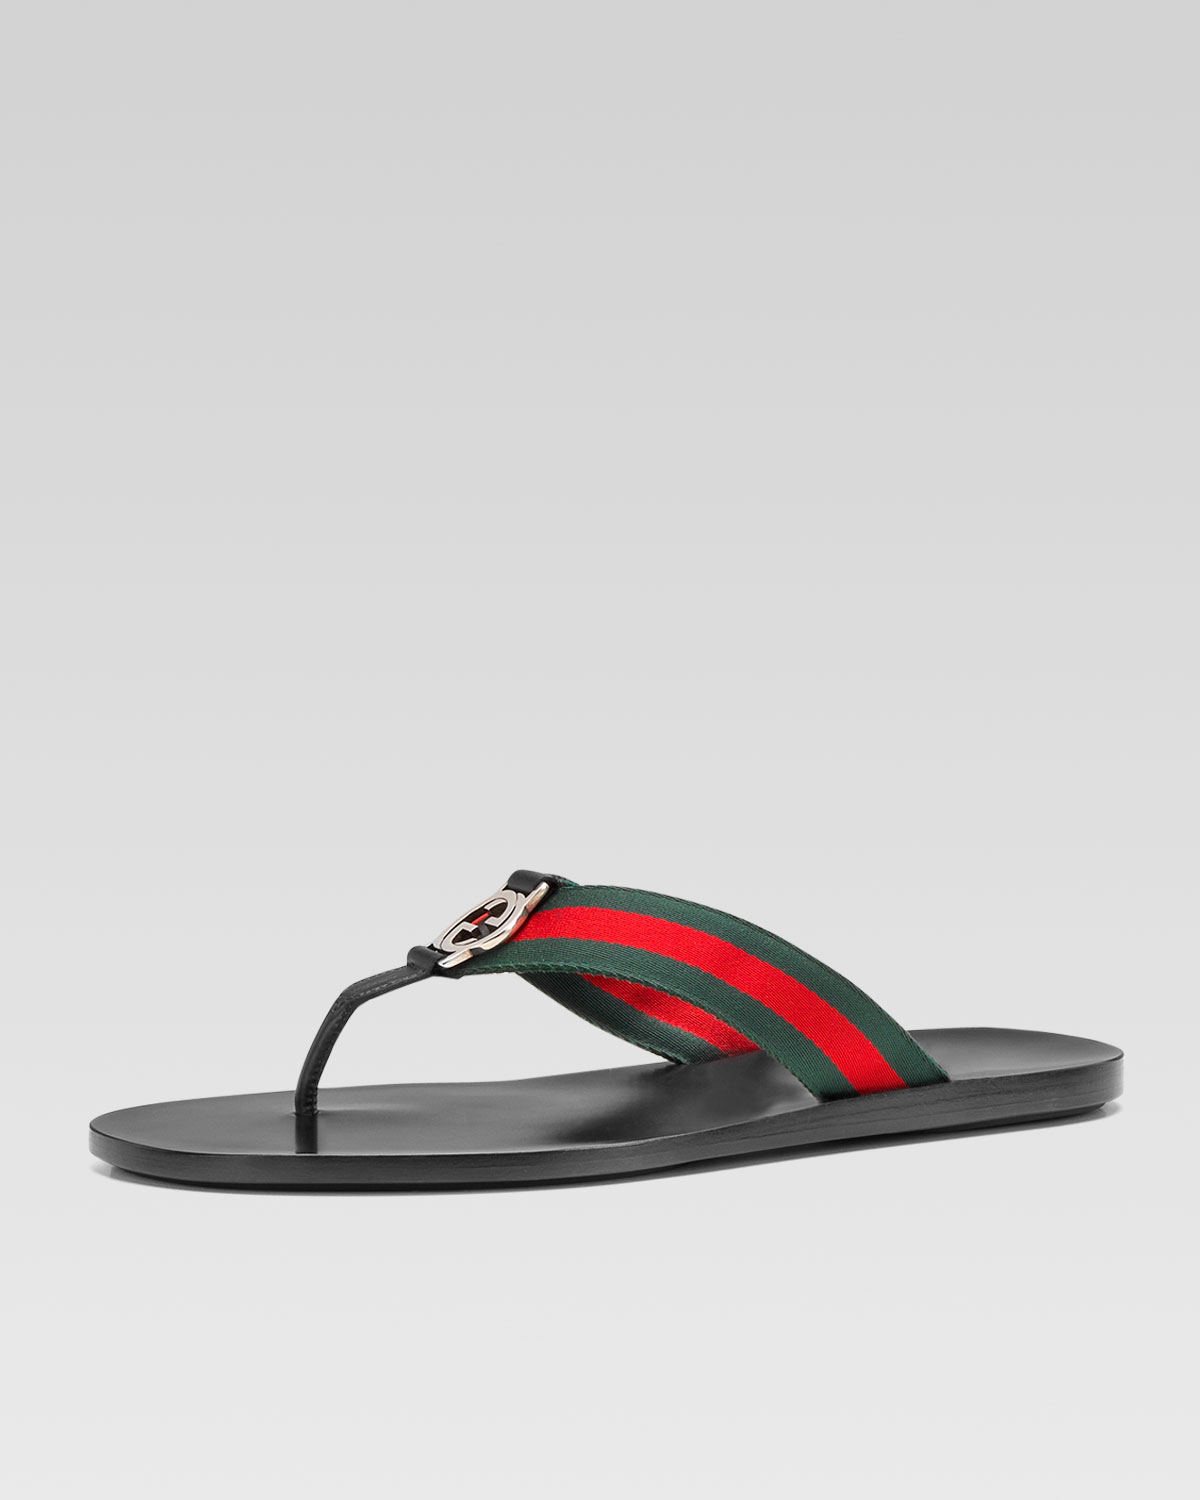 766094831c9 Gucci Men s Web Strap Thong Sandals